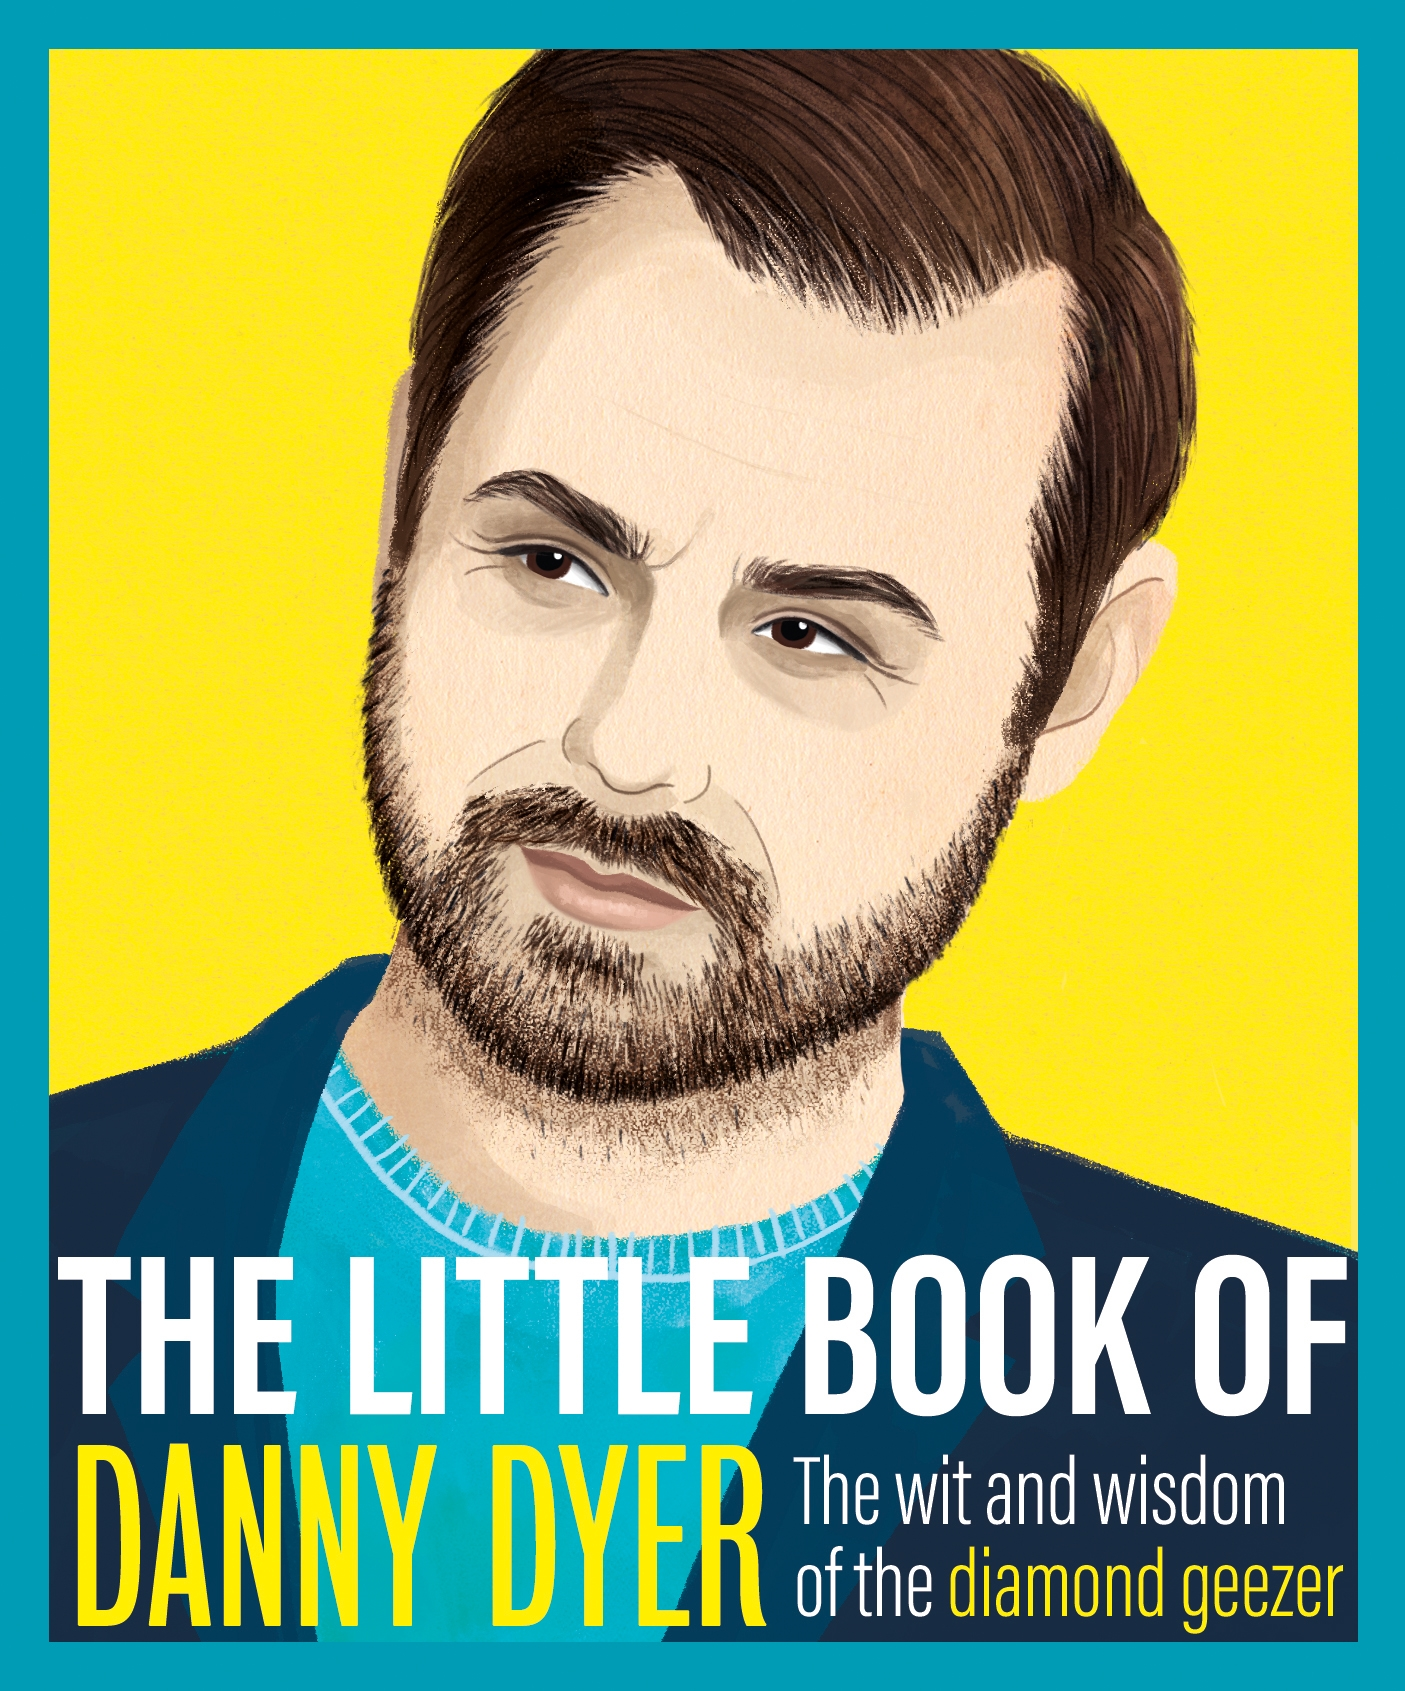 The Little Book of Danny Dyer